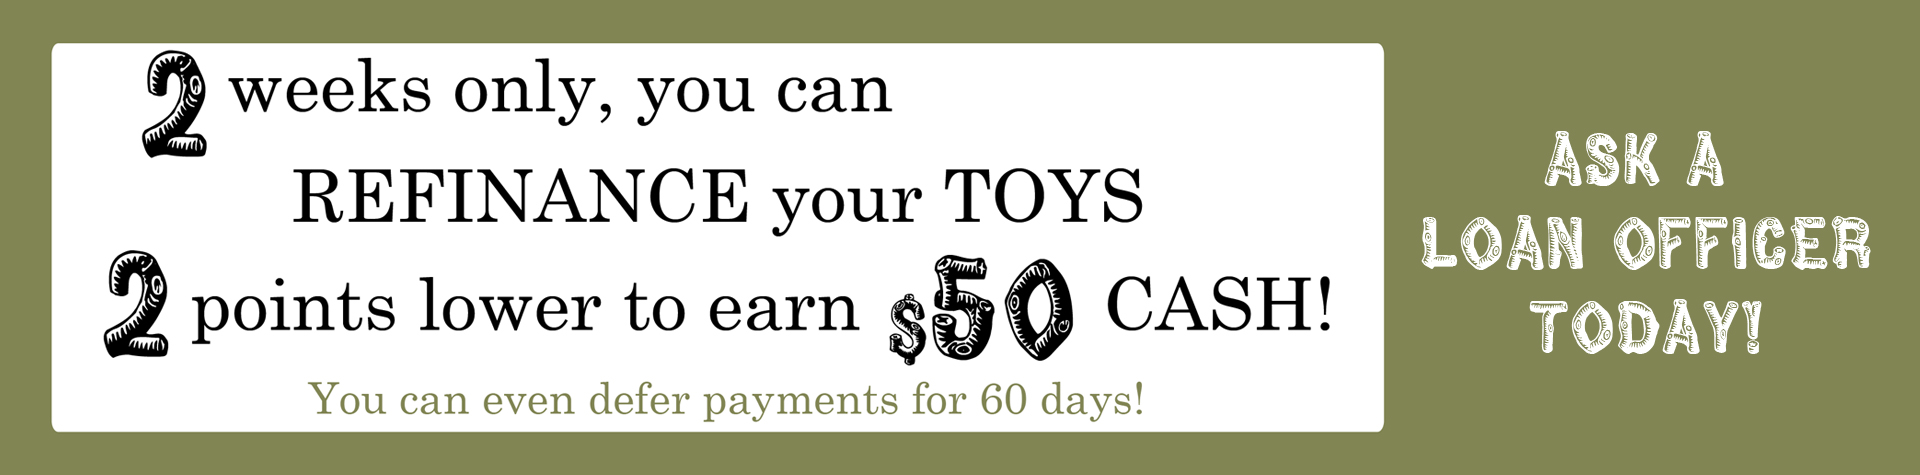 Refinance your Toys!